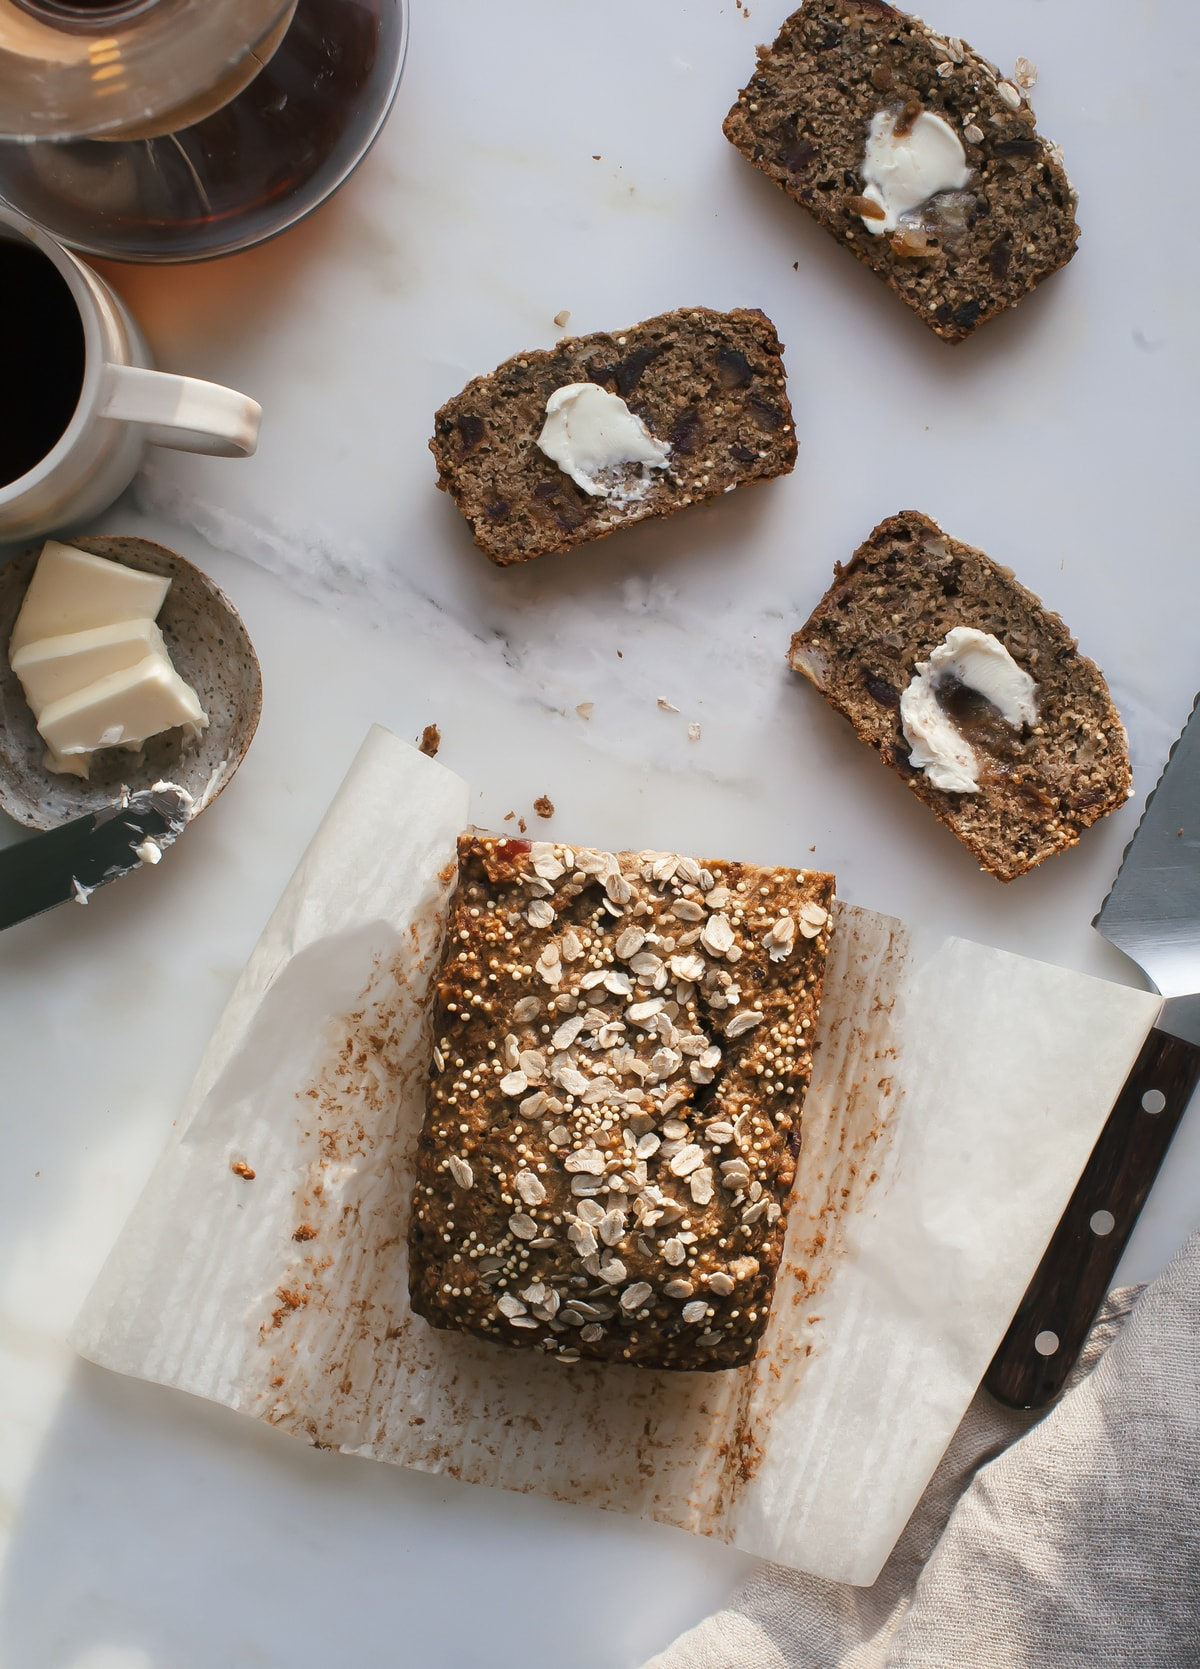 Spelt Oat Date Banana Bread with Cocoa Nibs and Millet Seeds